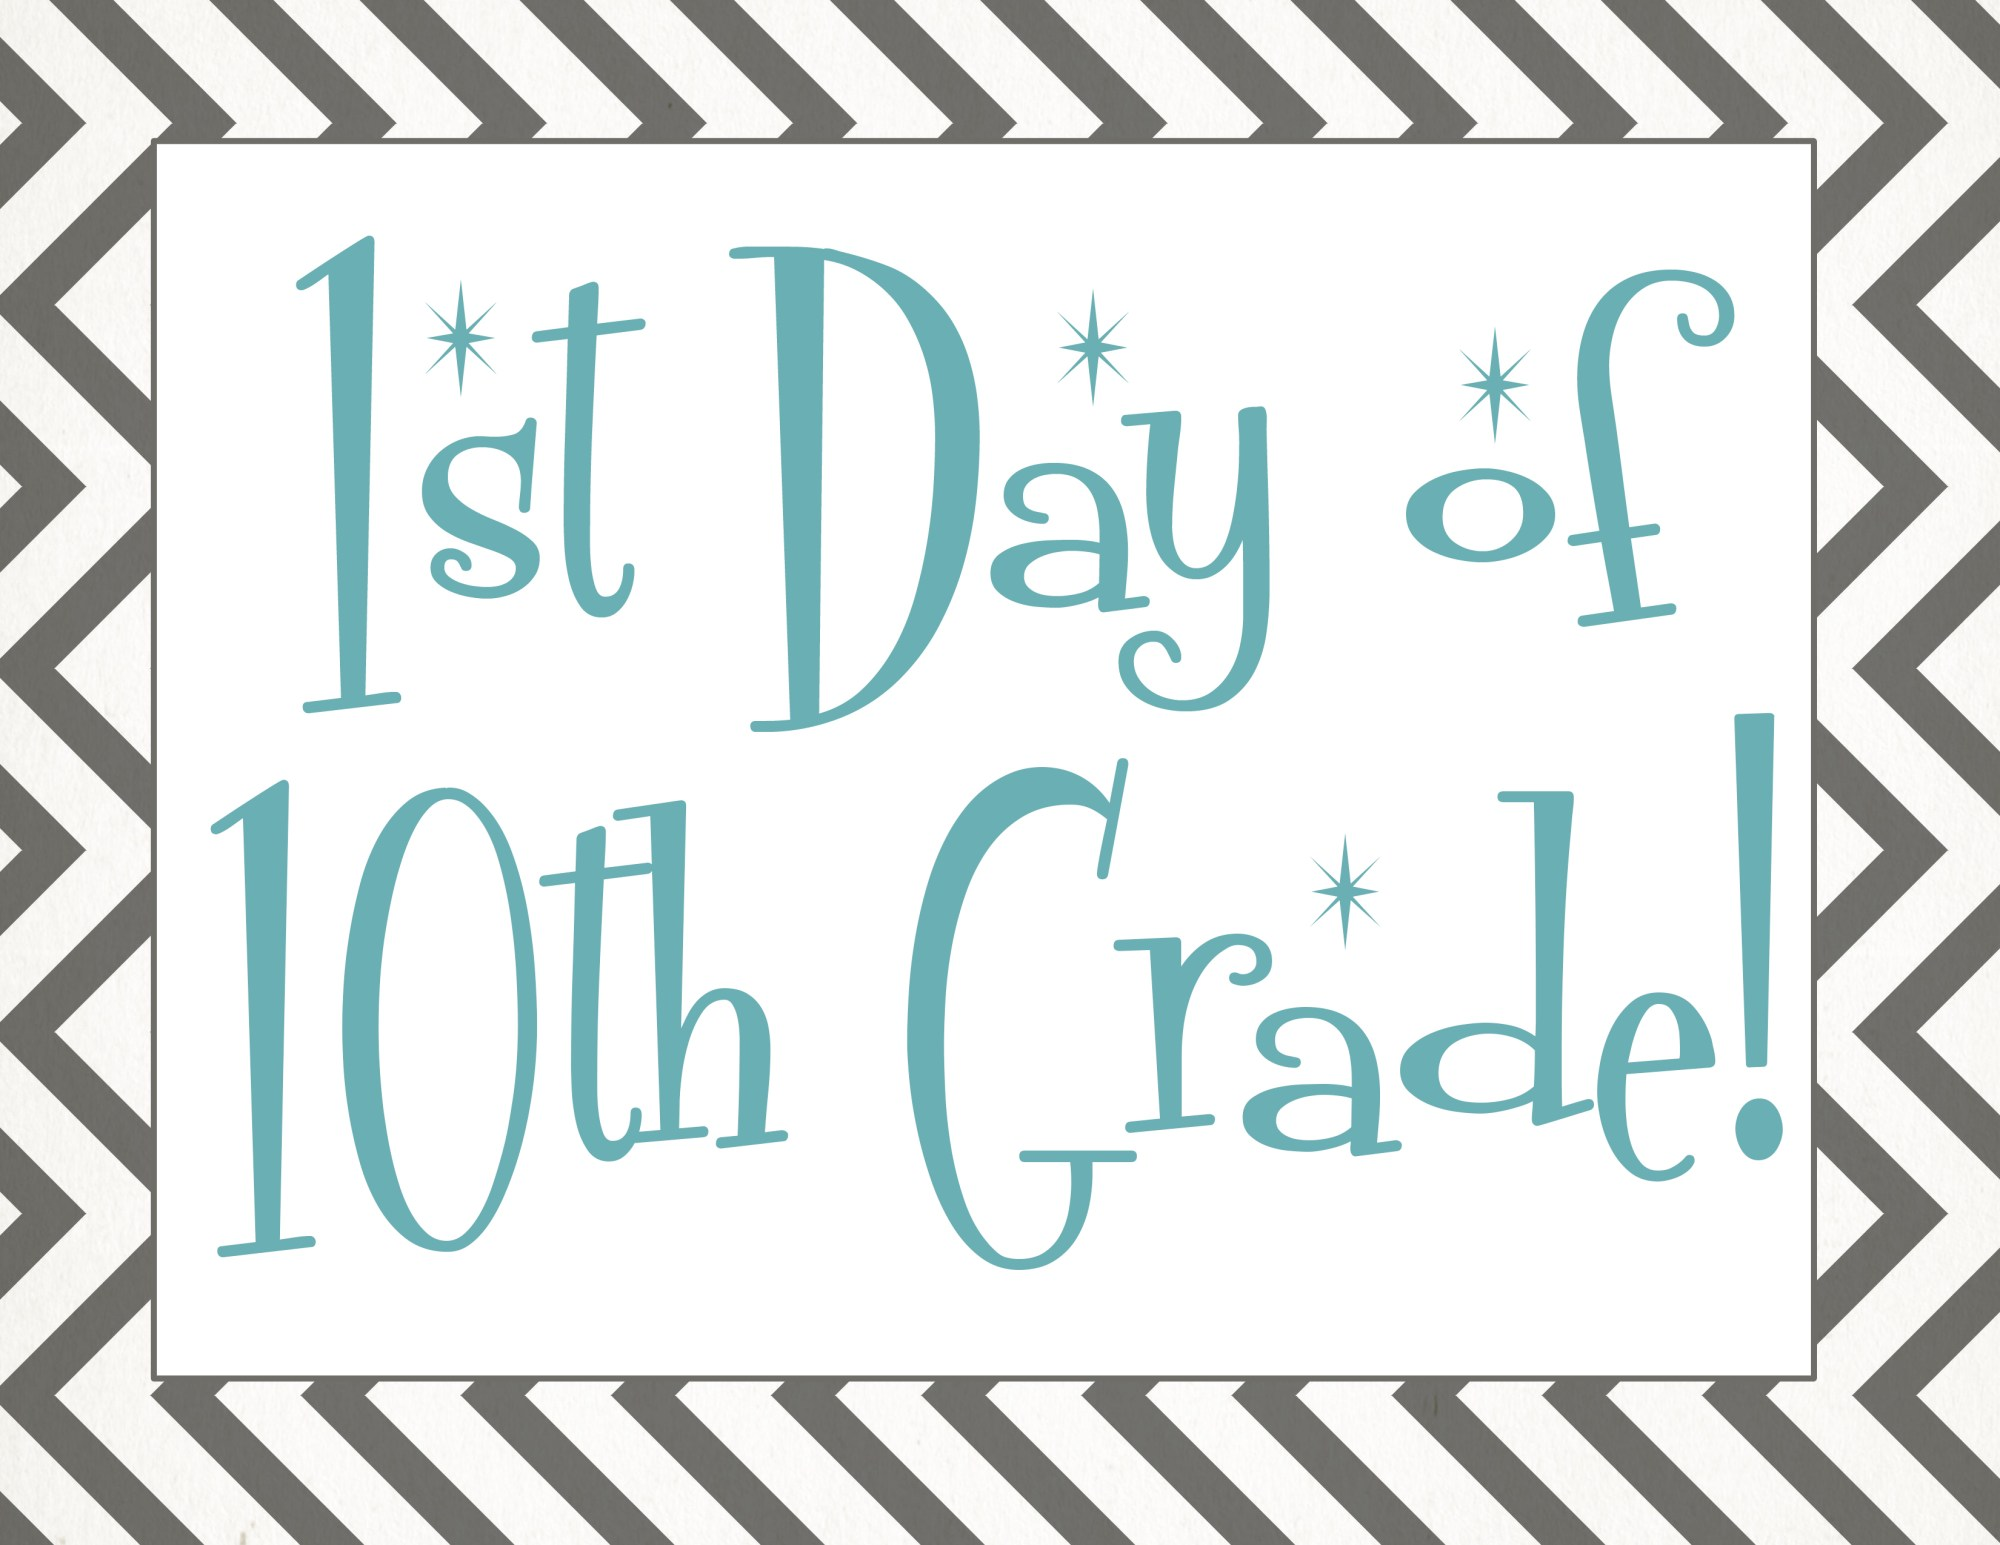 hight resolution of First Day Of School Worksheets 1st Grade   Printable Worksheets and  Activities for Teachers